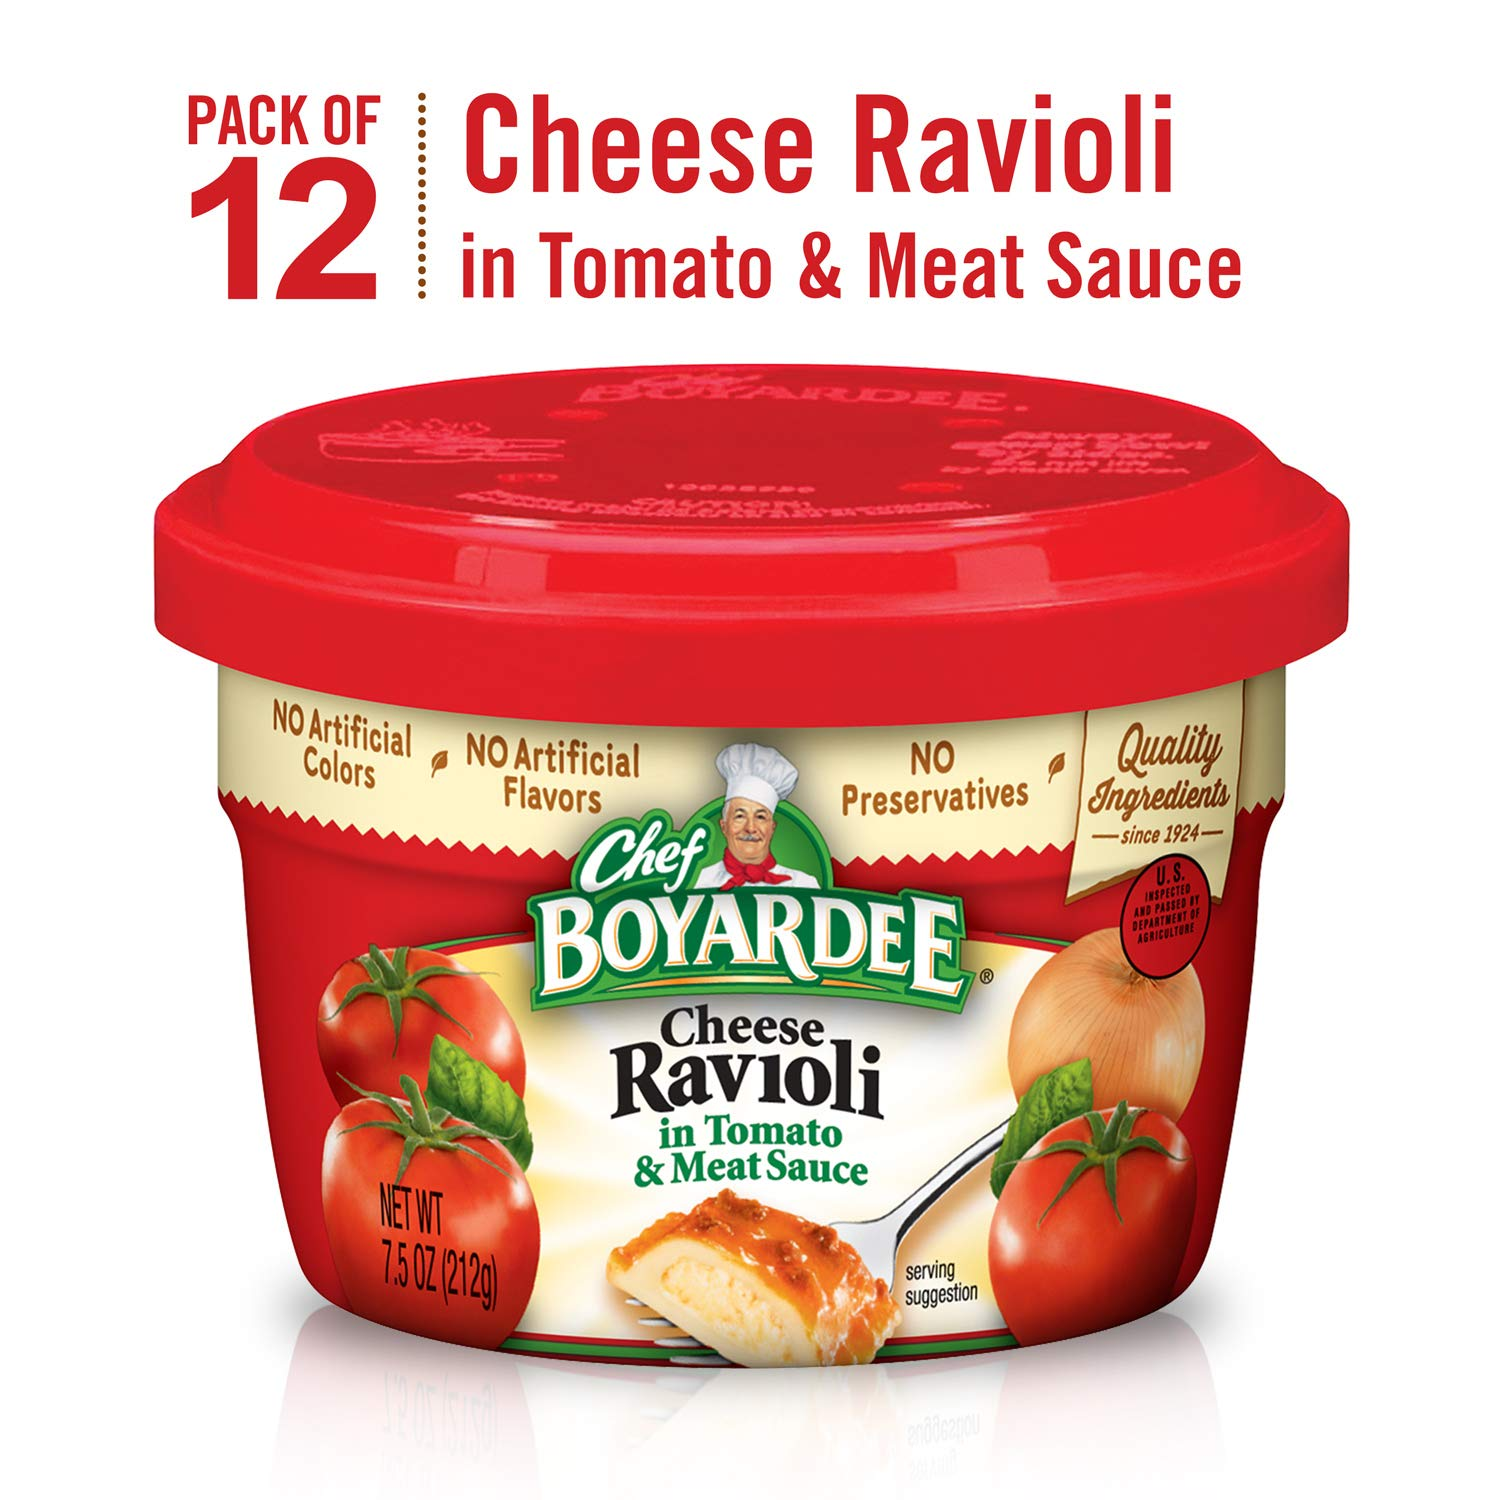 Chef Boyardee Cheese Ravioli Microwavable Meal Bowl